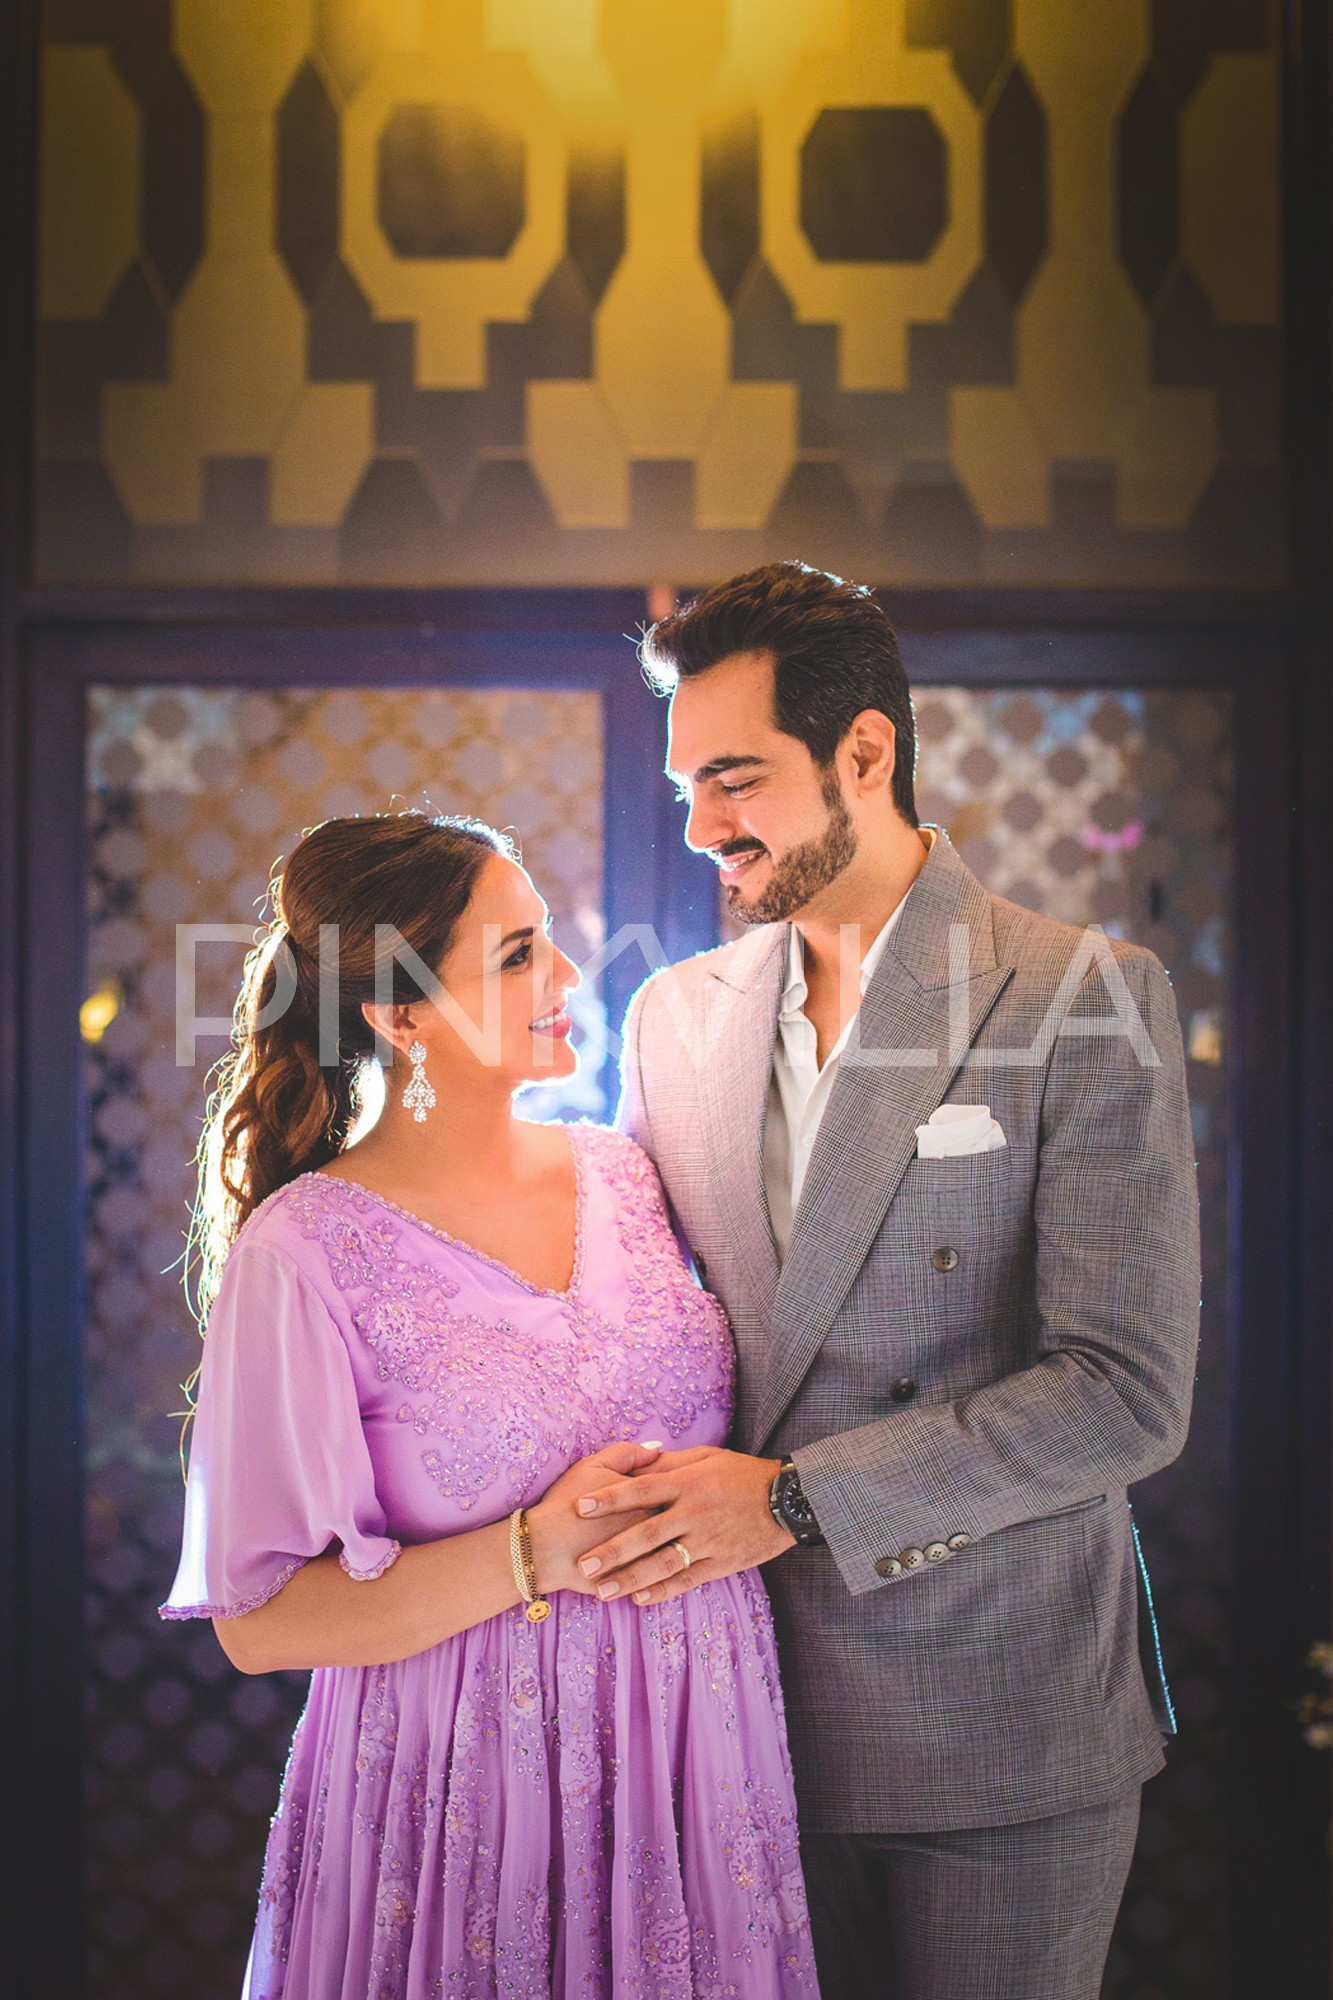 Esha Deol s sister Ahana Deol throws a surprise lavender themed baby